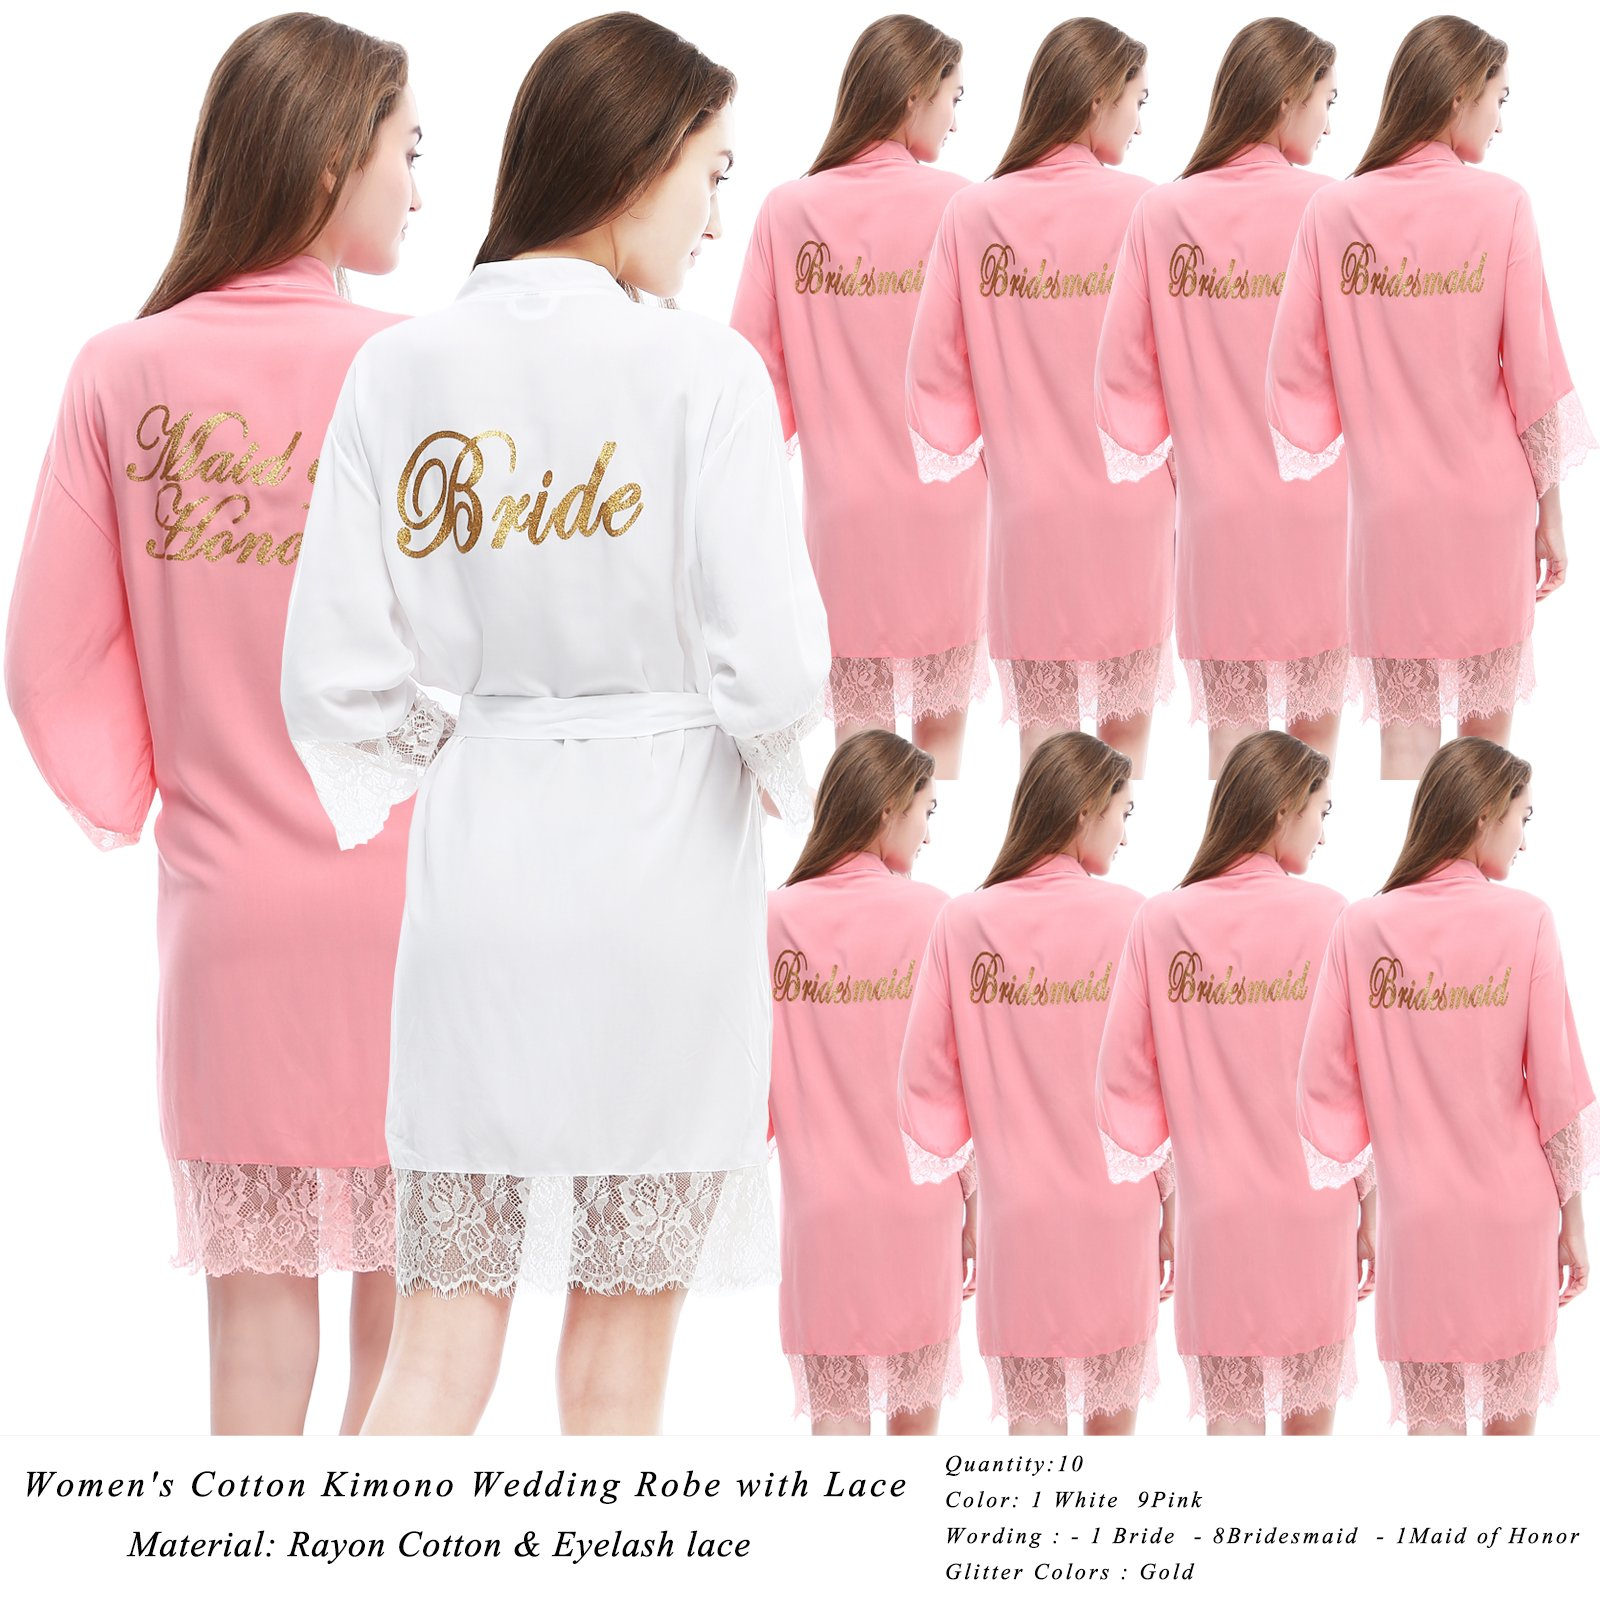 PROGULOVER Women's Set Of 10 Bridesmaid Robes For Wedding Cotton Kimono Bridal Party Getting Ready Robe With Blush Gold Glitter by PROGULOVER (Image #1)